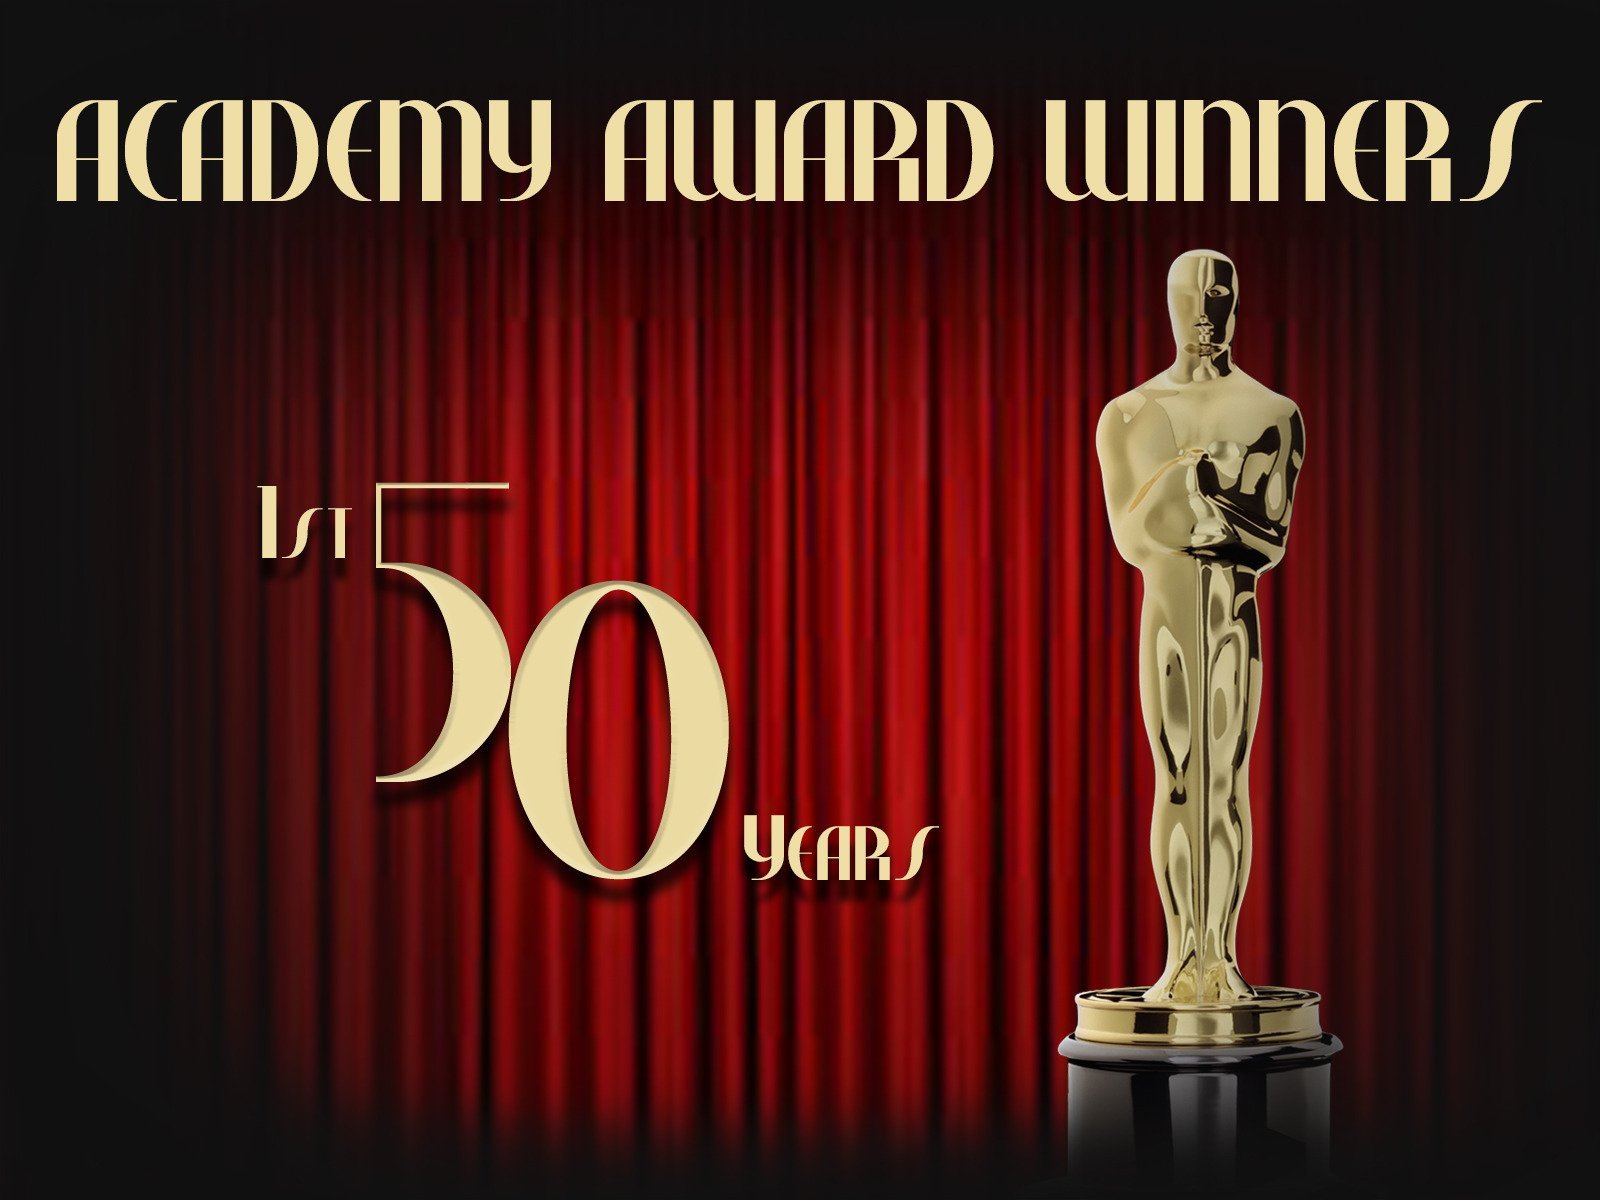 Academy Award Winners: The First 50 Years - Season 1